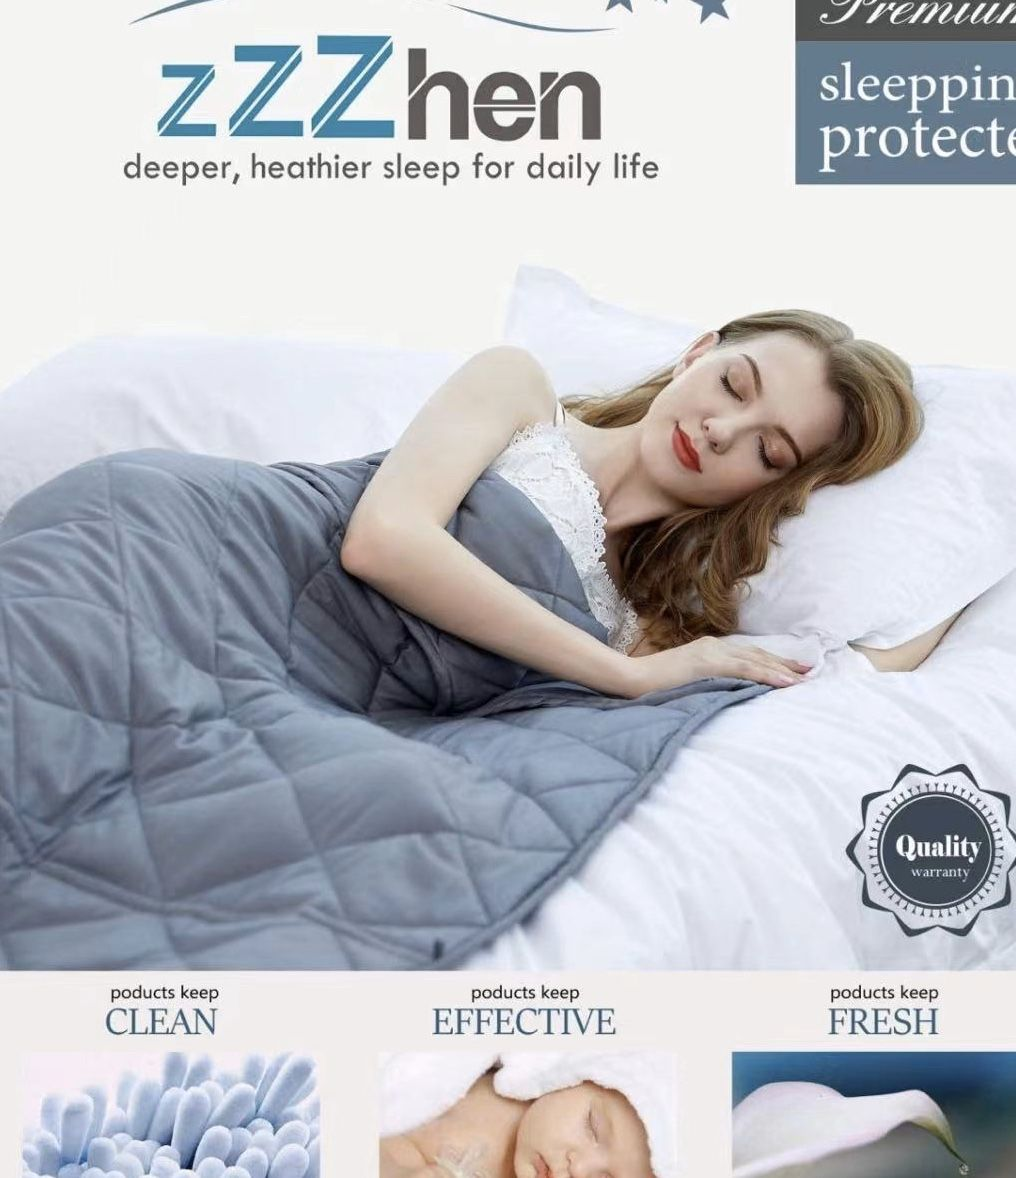 Weighted Blanket - High Breathability - 48''72'' 15LBs - Premium Heavy Blankets - Calm Sleeping for Adult and Kids, Durable Quilts and Quality Constru